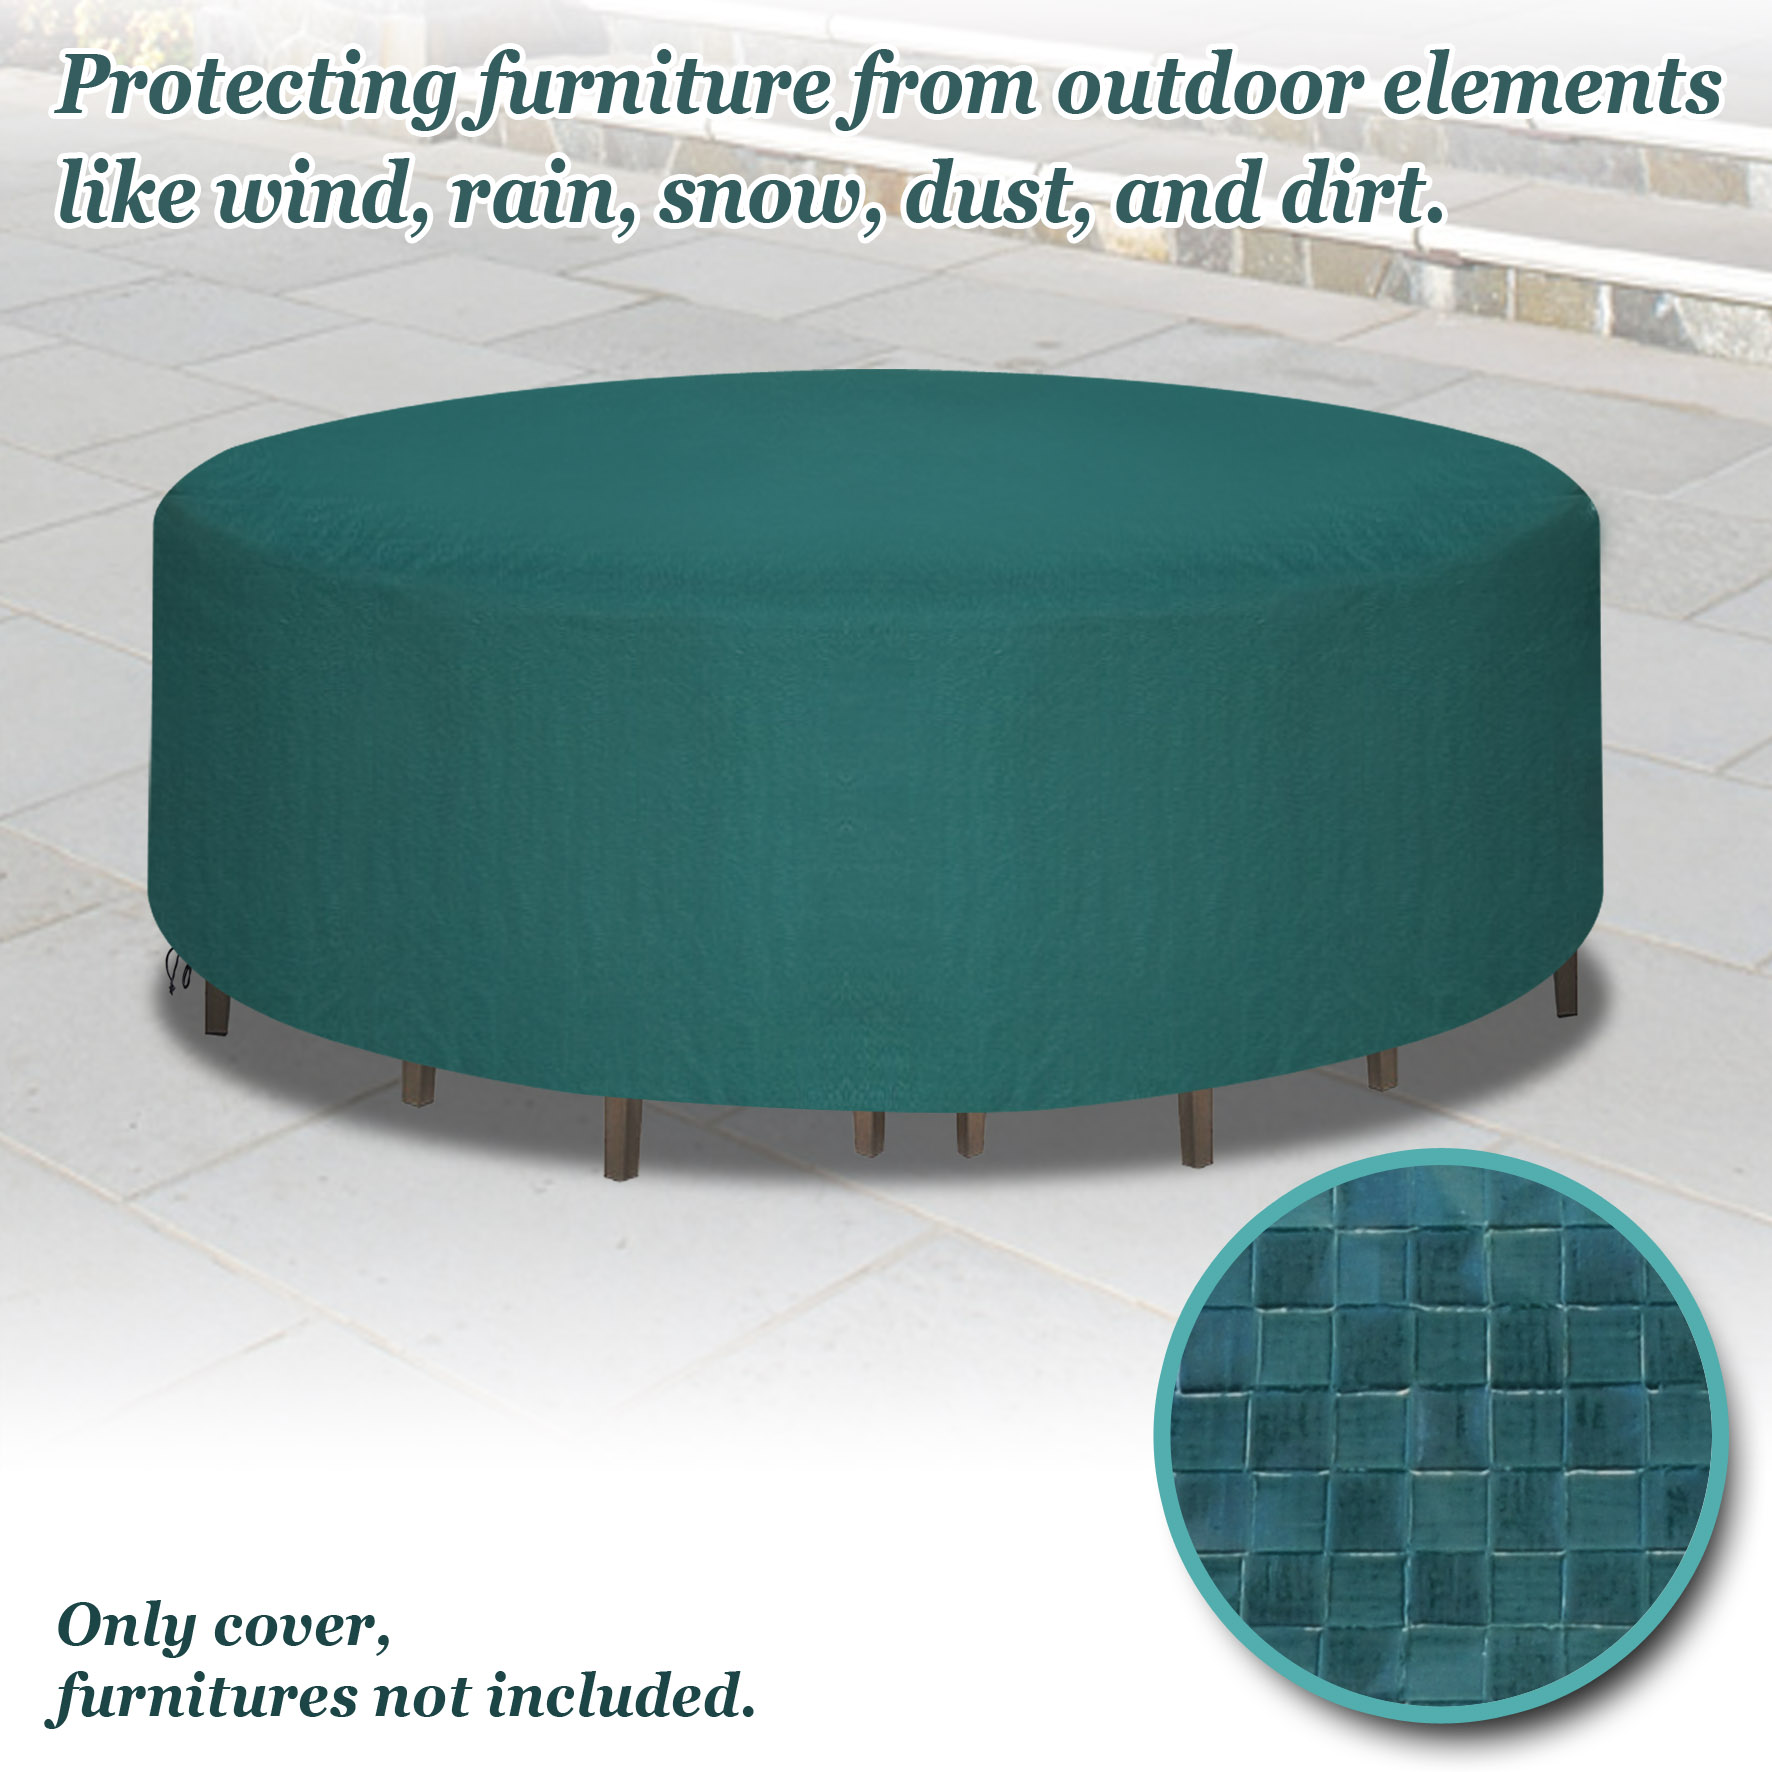 Sunrise Outdoor Garden Furniture Cover, Protection for Round Square Table and Chair Set - Green